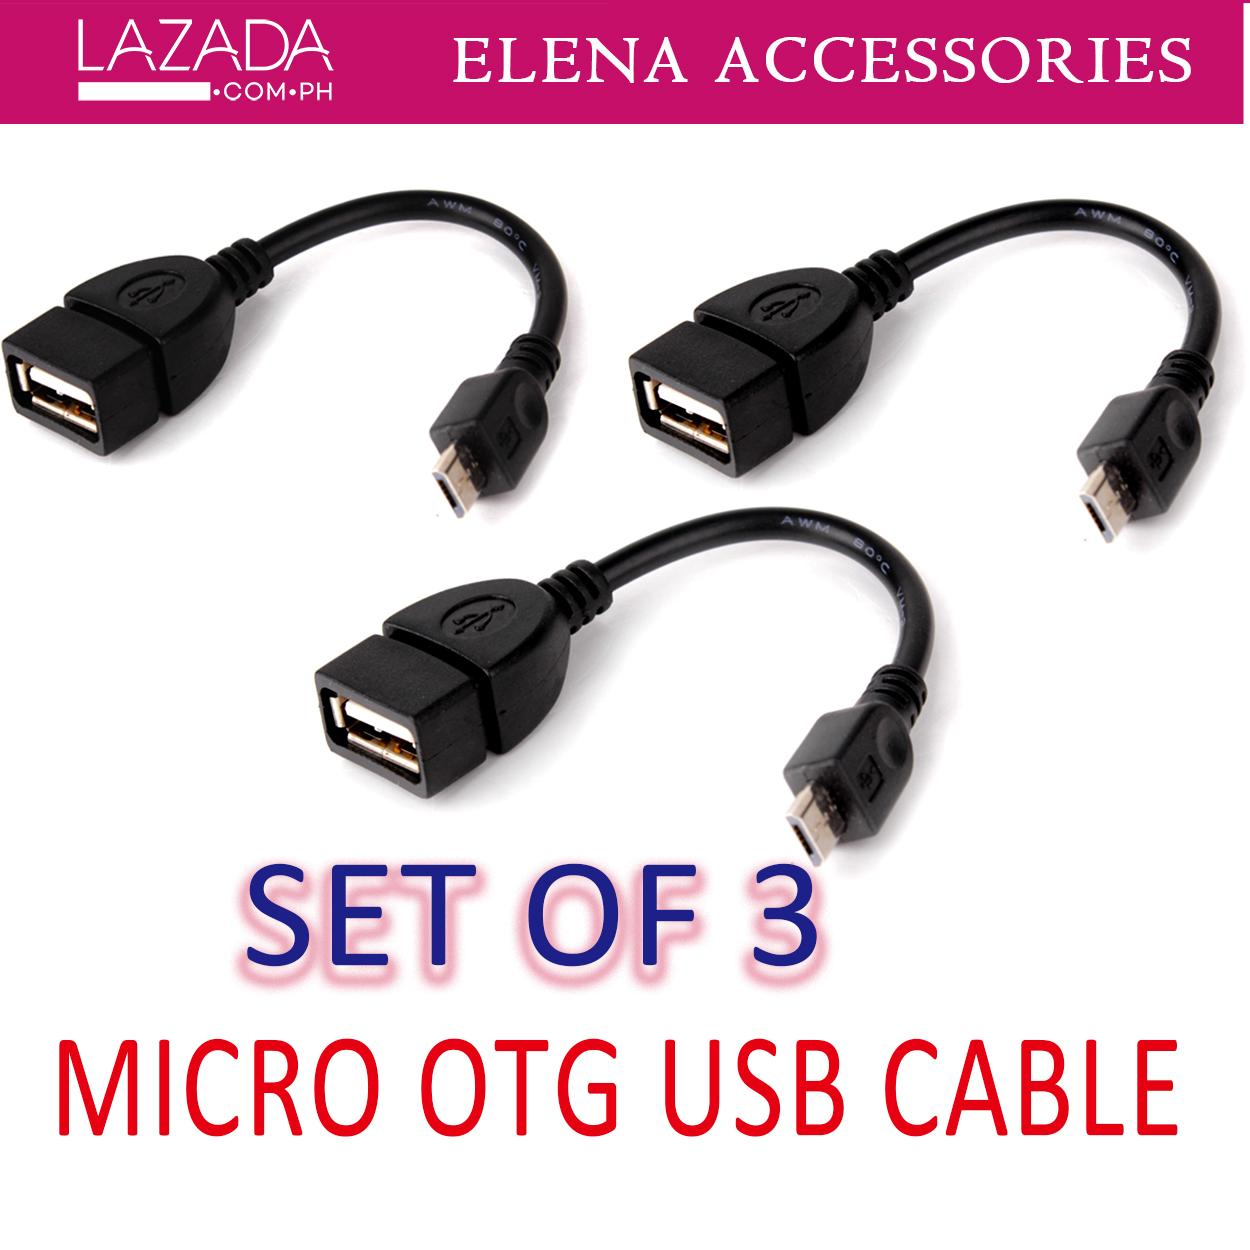 Set of 3 New Micro USB Data Cable Support with Mobile Phone and Tablets  Black OTG Cable/Adapter